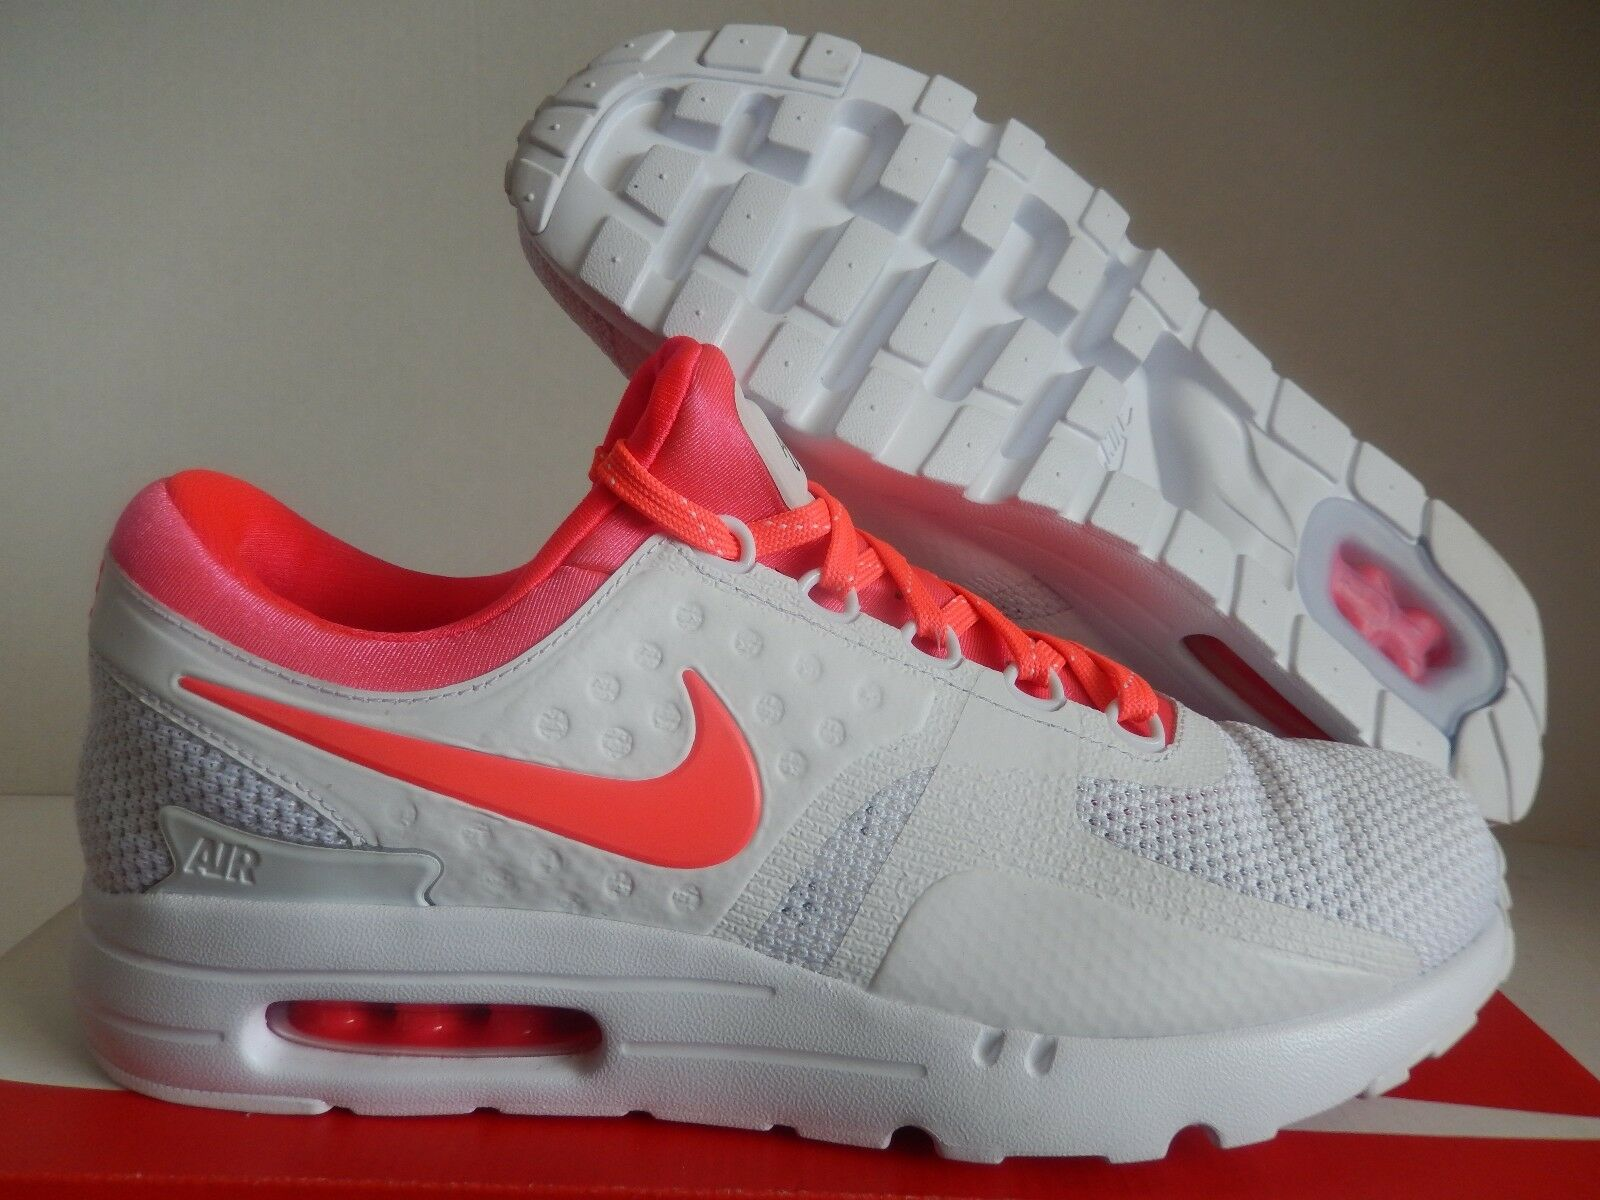 MENS NIKE AIR MAX ZERO ID WHITE-INFRARED Price reduction The most popular shoes for men and women